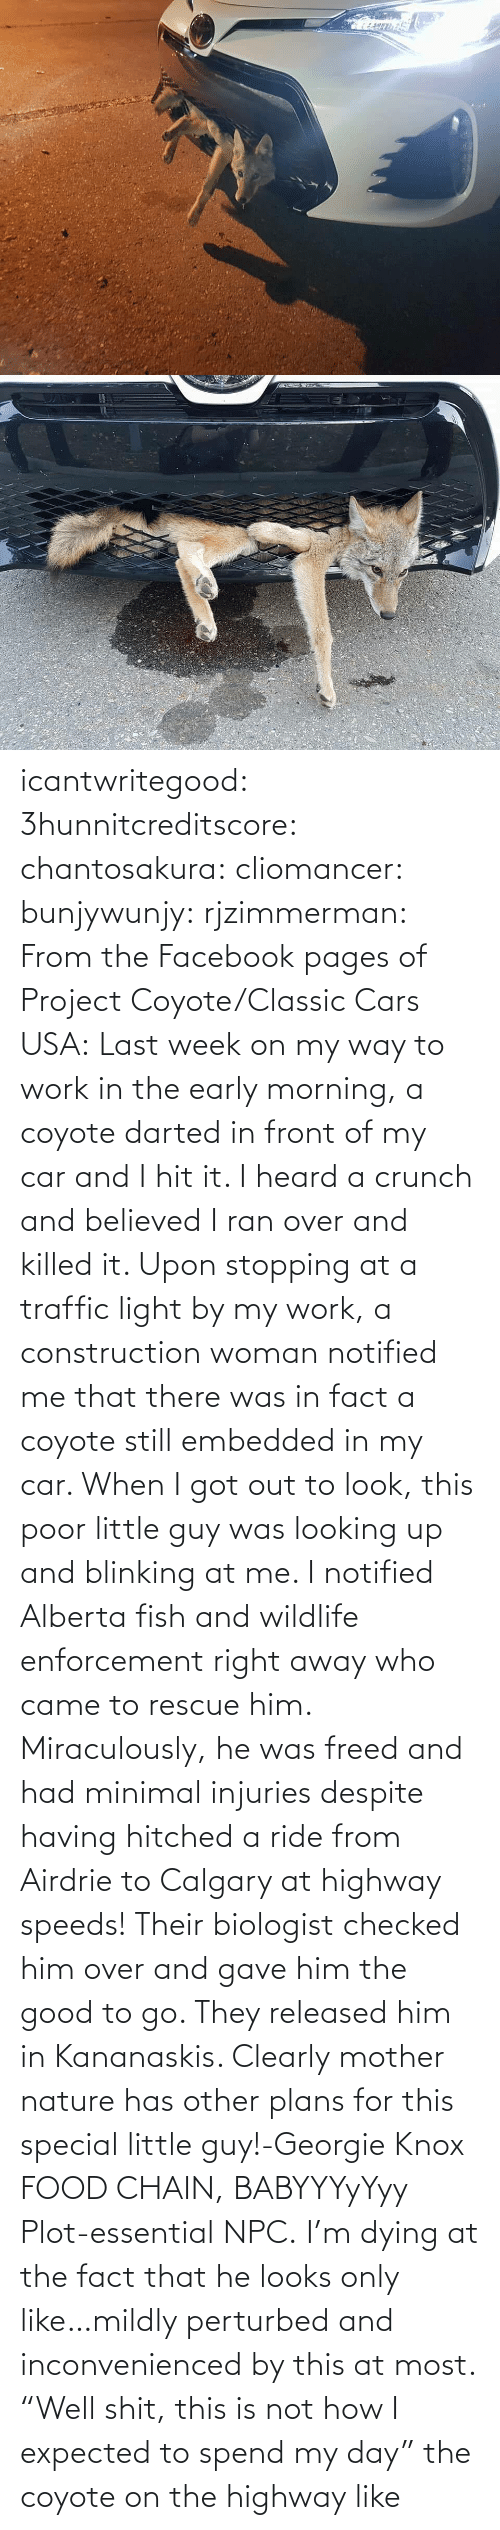 "car: icantwritegood: 3hunnitcreditscore:  chantosakura:  cliomancer:  bunjywunjy:  rjzimmerman:  From the Facebook pages of Project Coyote/Classic Cars USA: Last week on my way to work in the early morning, a coyote darted in front of my car and I hit it. I heard a crunch and believed I ran over and killed it. Upon stopping at a traffic light by my work, a construction woman notified me that there was in fact a coyote still embedded in my car. When I got out to look, this poor little guy was looking up and blinking at me. I notified Alberta fish and wildlife enforcement right away who came to rescue him. Miraculously, he was freed and had minimal injuries despite having hitched a ride from Airdrie to Calgary at highway speeds! Their biologist checked him over and gave him the good to go. They released him in Kananaskis. Clearly mother nature has other plans for this special little guy!-Georgie Knox  FOOD CHAIN, BABYYYyYyy  Plot-essential NPC.   I'm dying at the fact that he looks only like…mildly perturbed and inconvenienced by this at most.    ""Well shit, this is not how I expected to spend my day""  the coyote on the highway like"